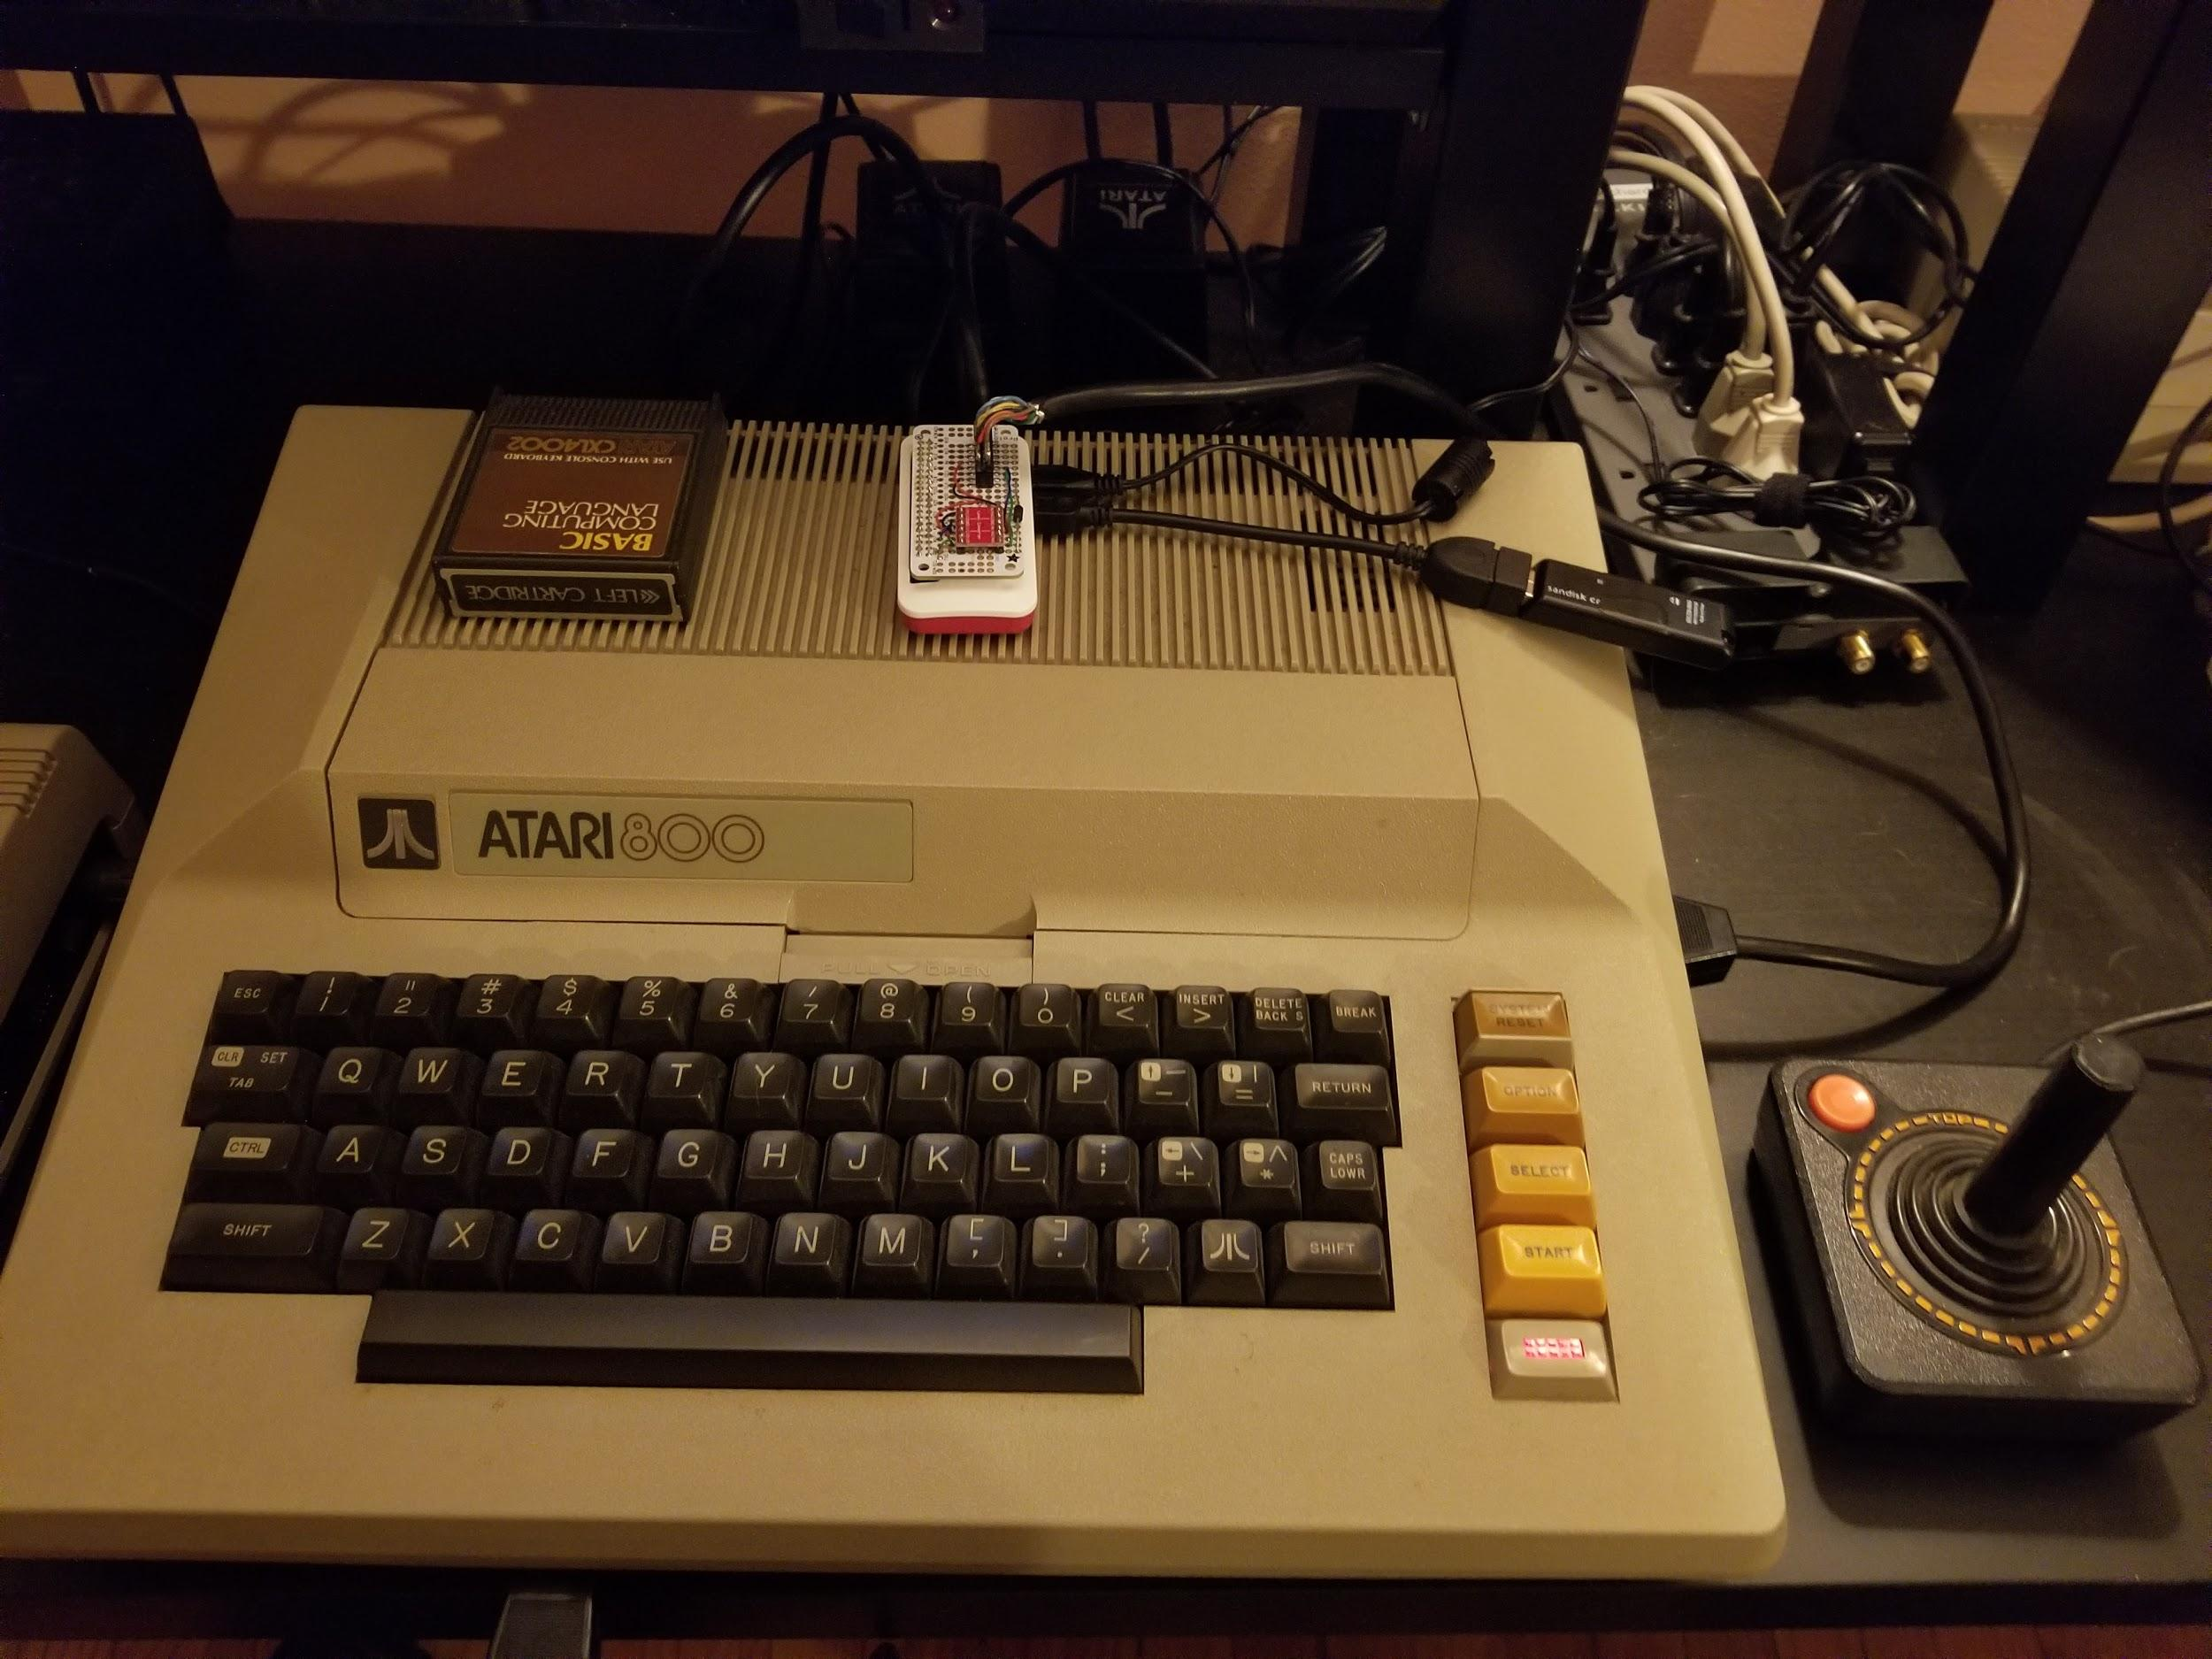 The whole Atari 800 and SIO2Pi setup sitting on my table